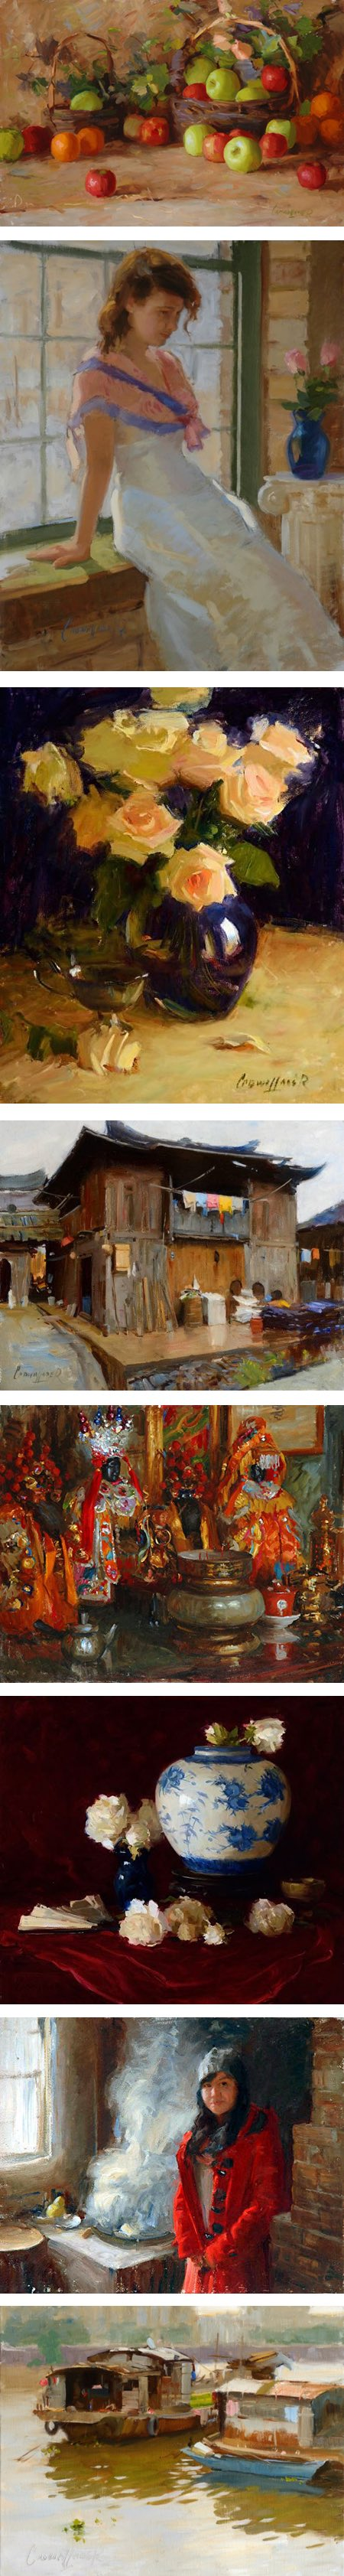 Kenneth Cadwallader paintings